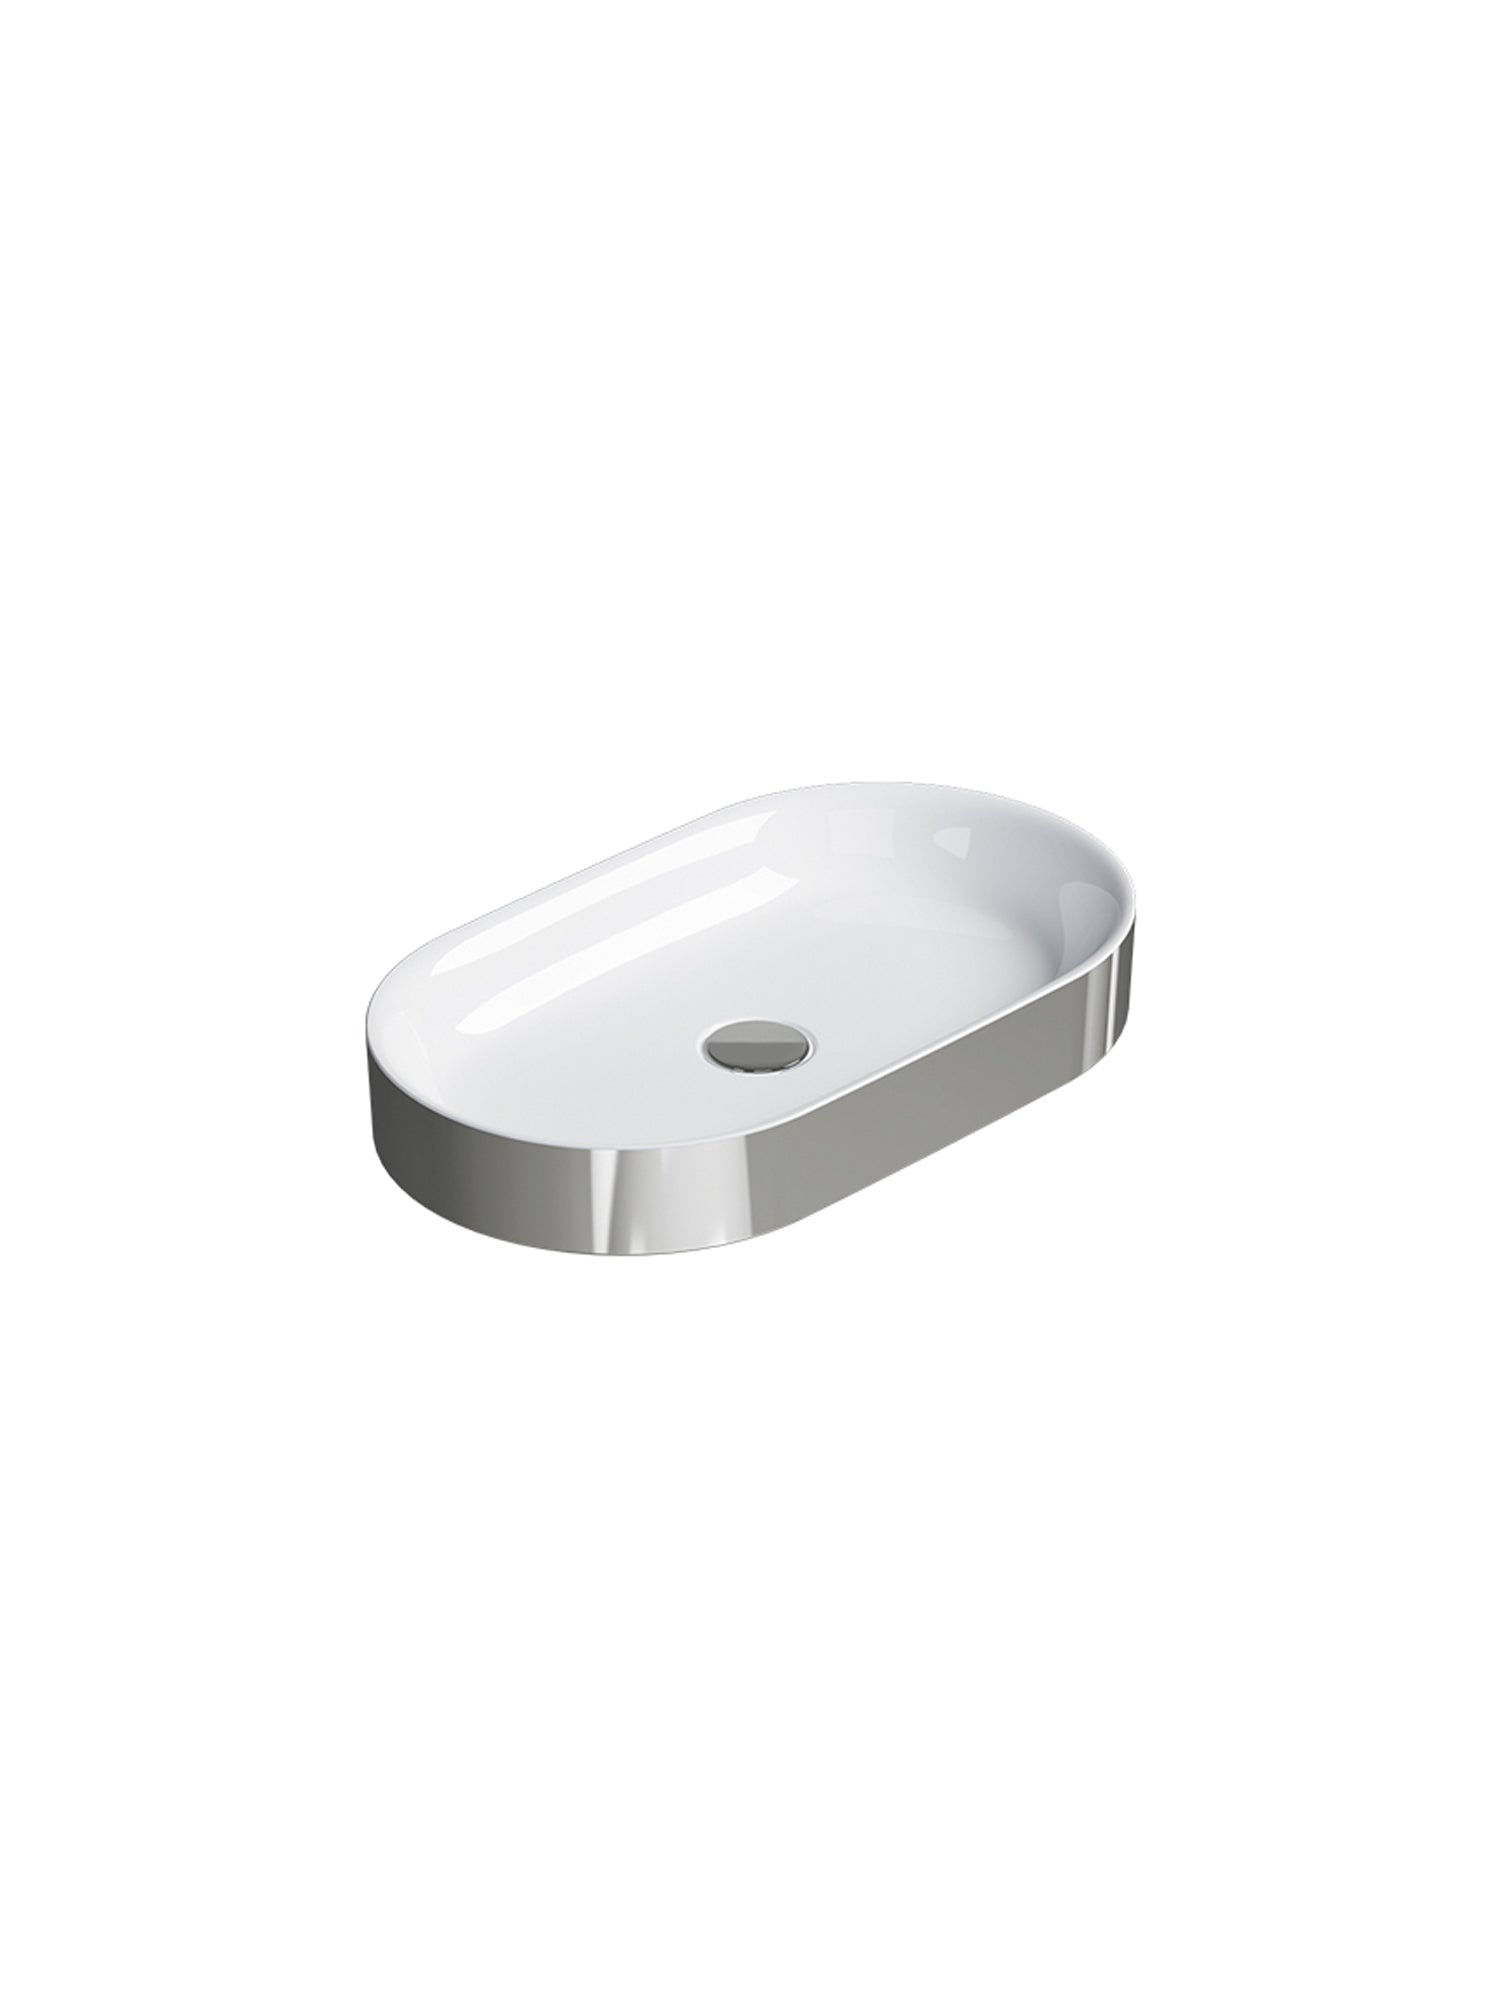 Horizon Countertop Basin #60AHZ – Gold & Silver